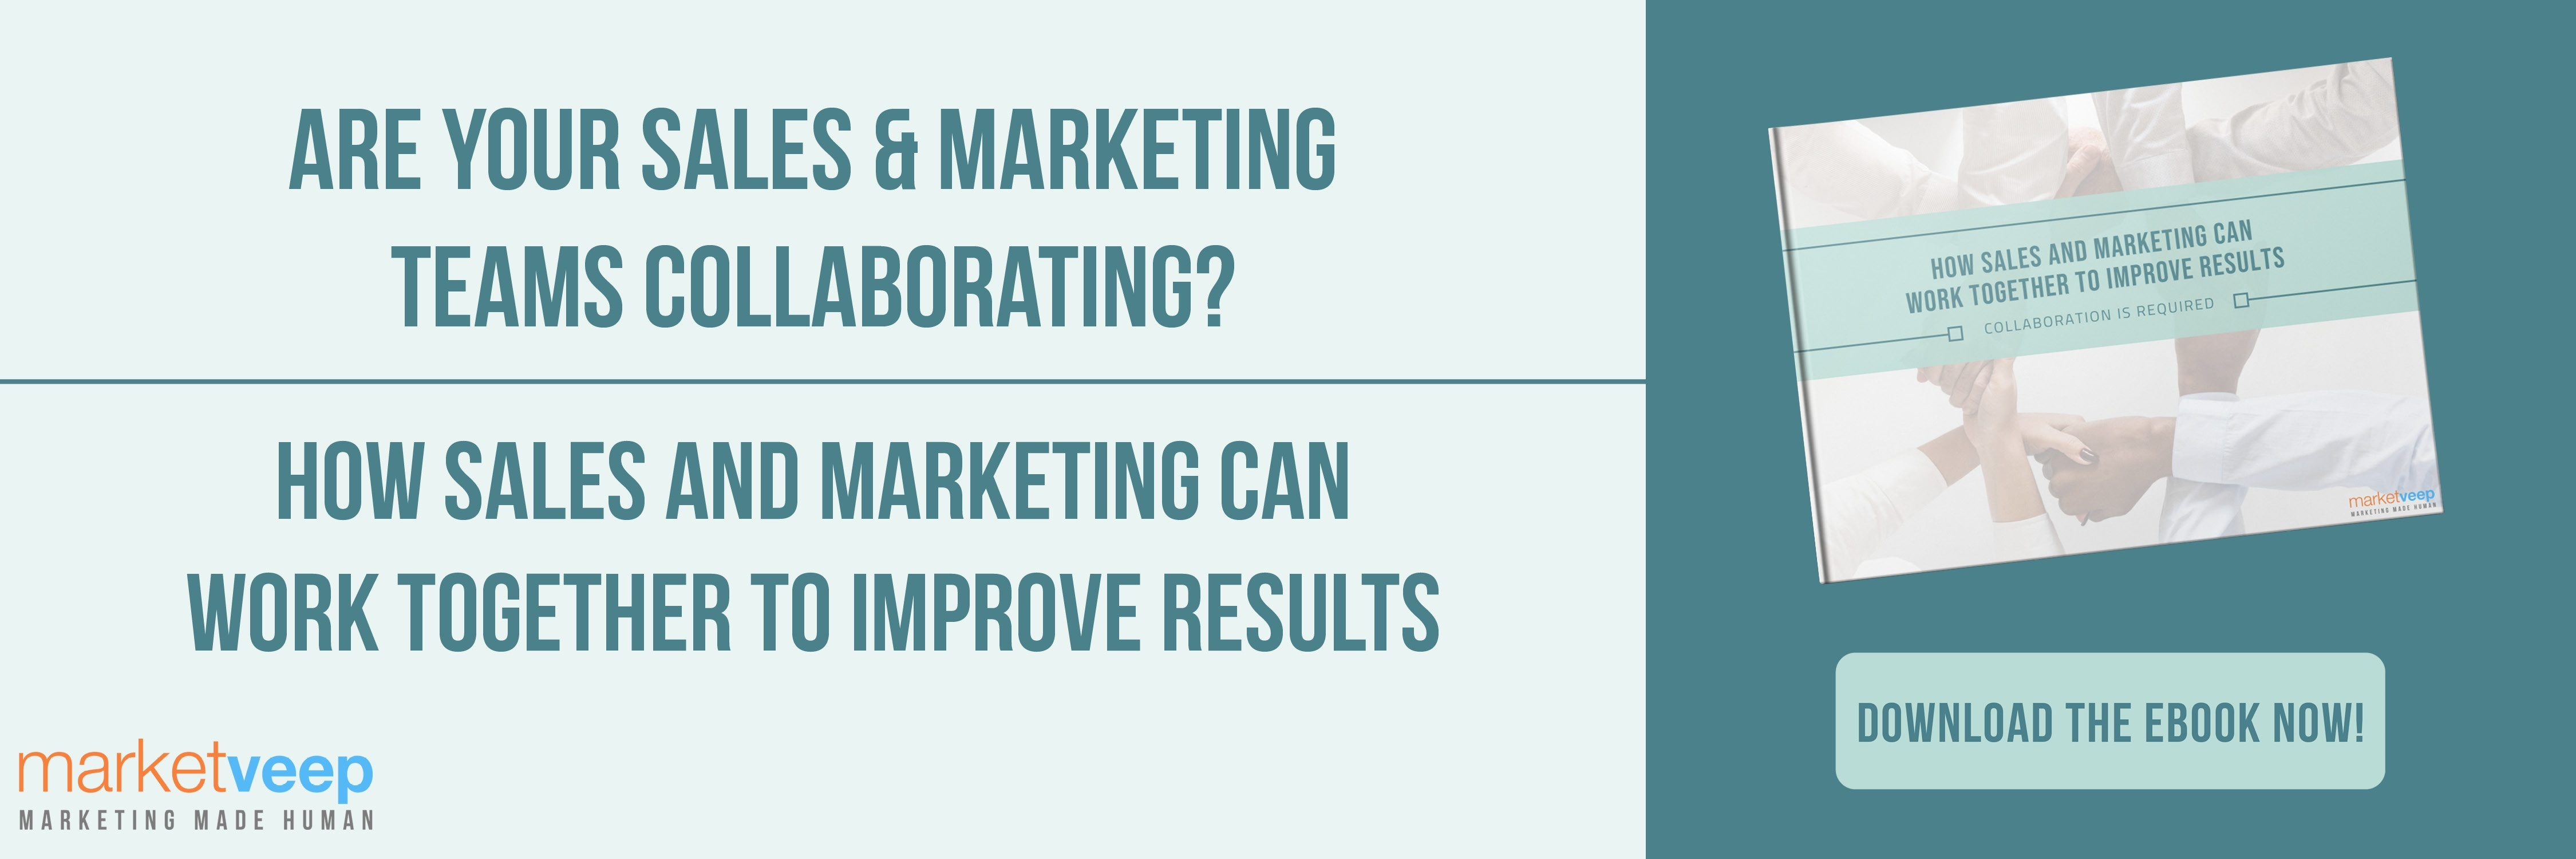 How Sales and Marketing Can Work Together to Improve Results